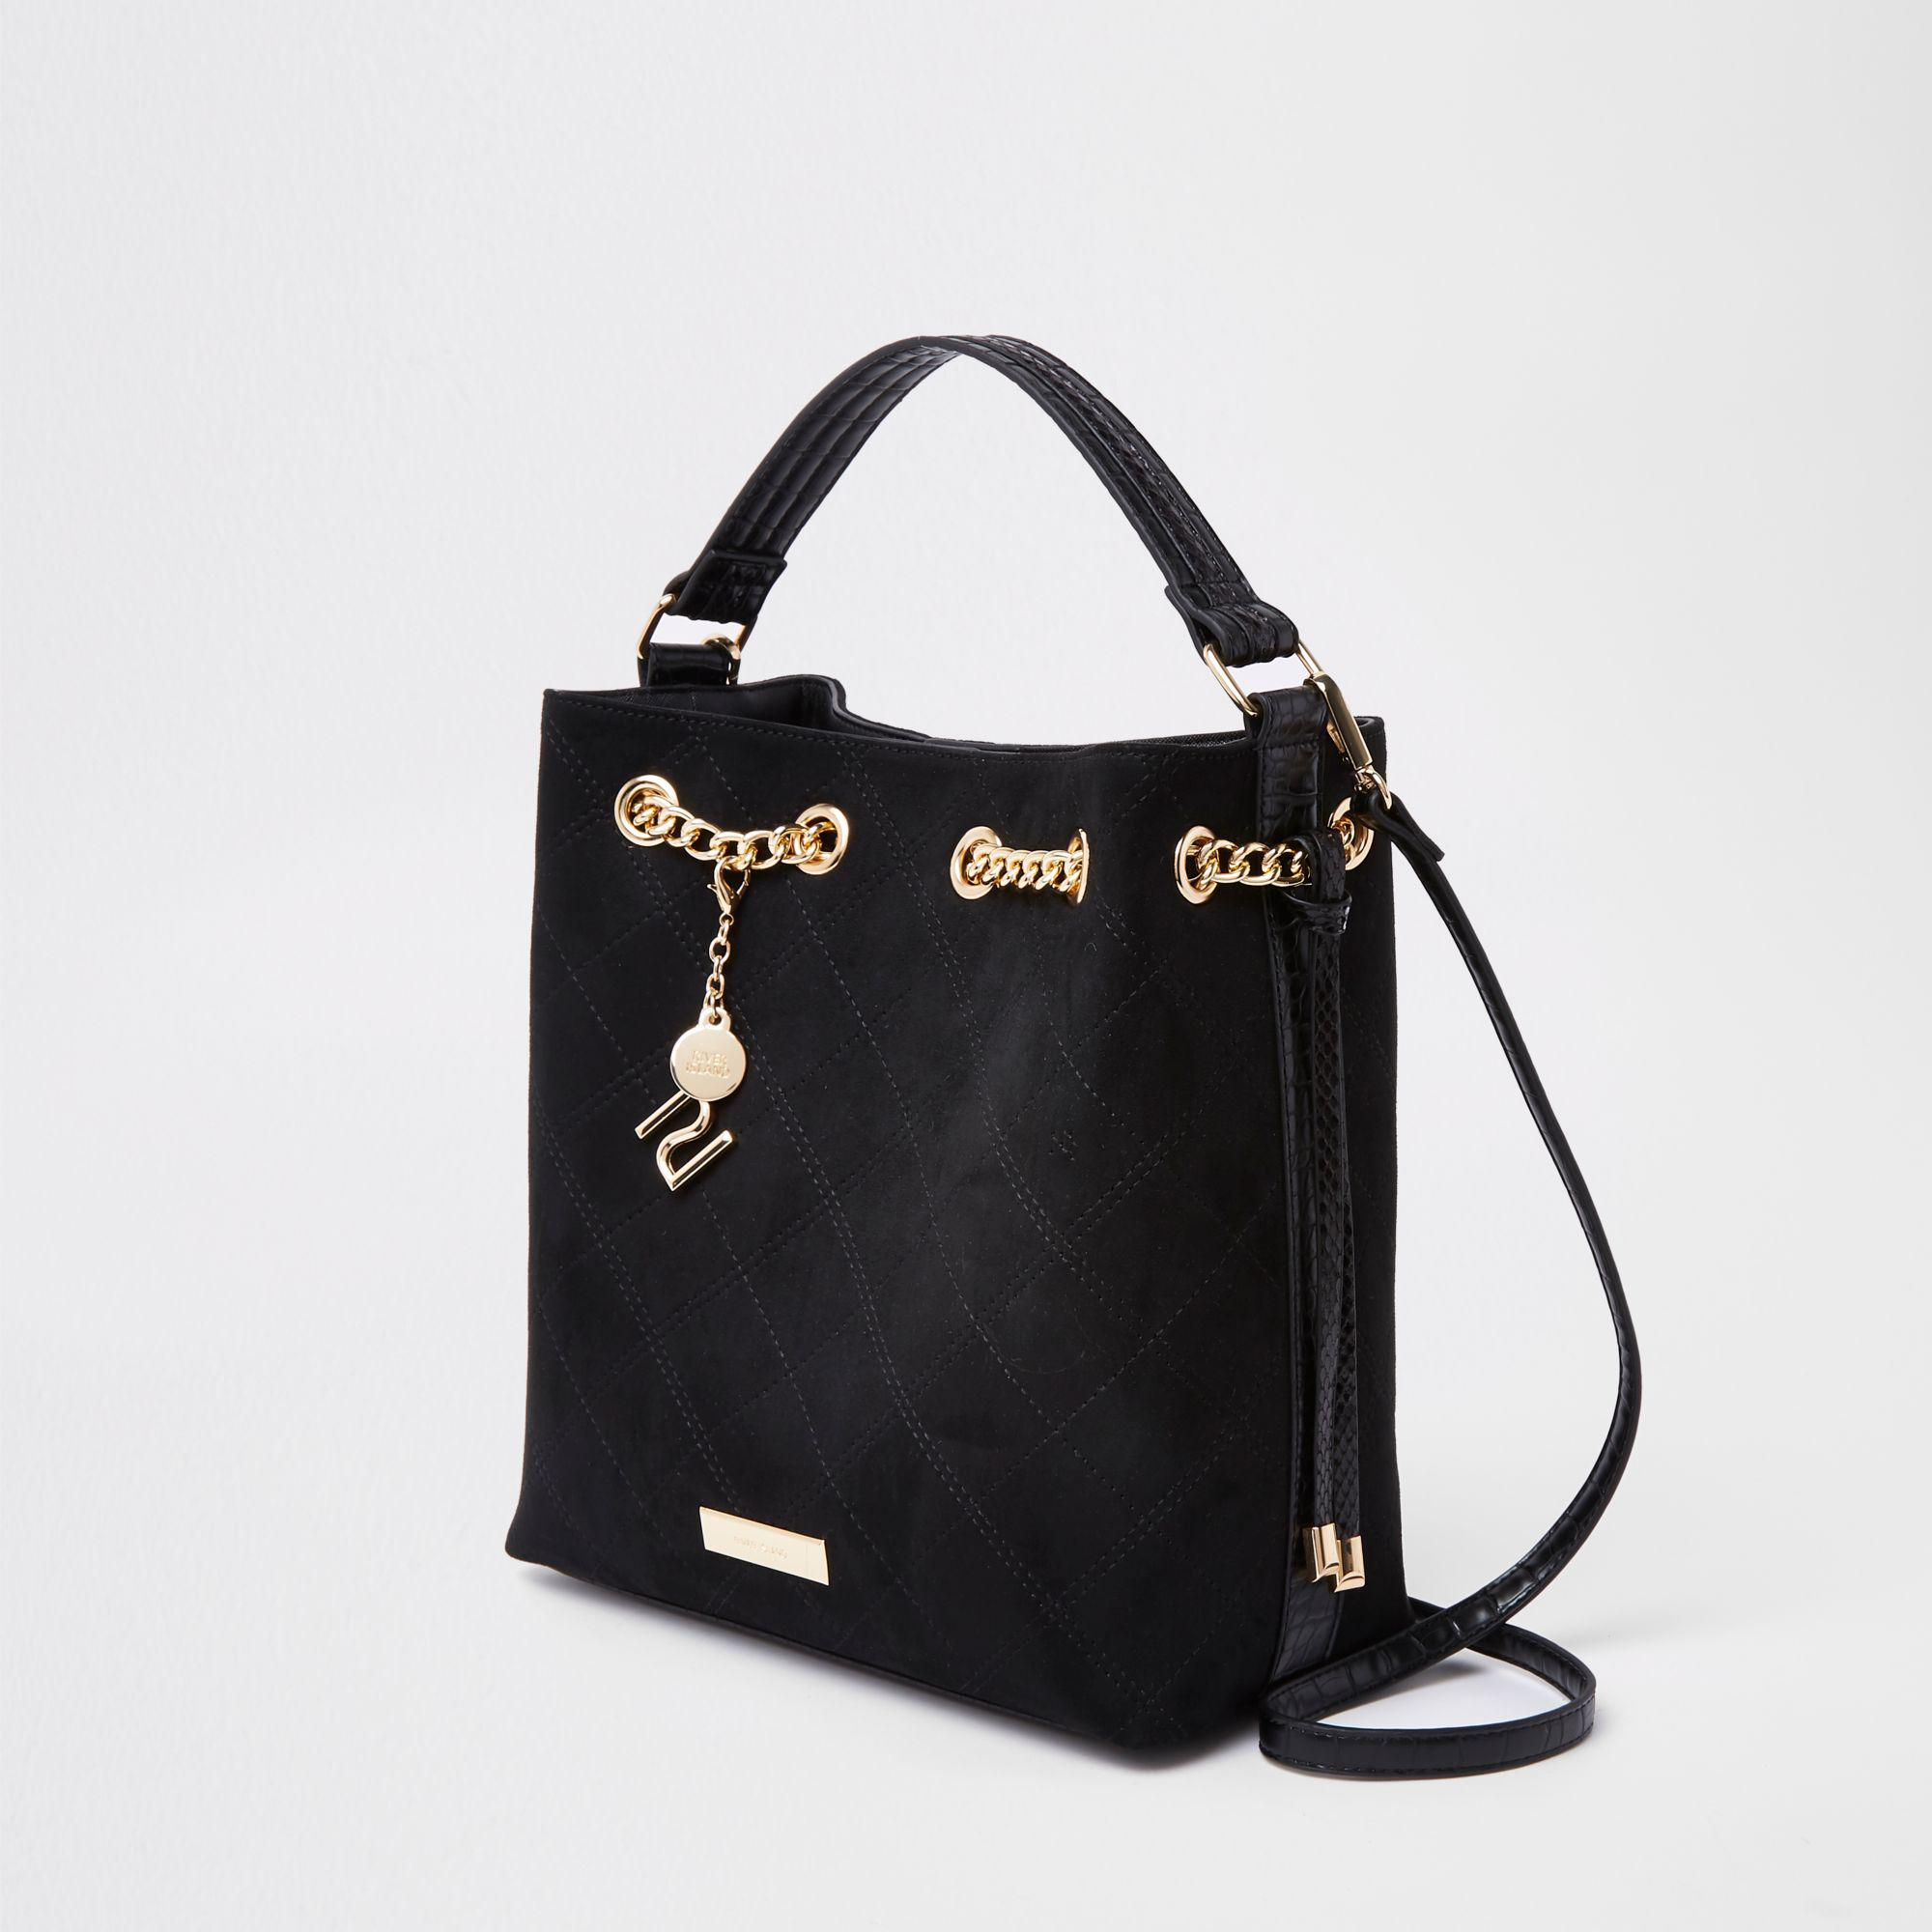 6fc0893ecf Lyst - River Island Chain Quilted Bucket Bag in Black